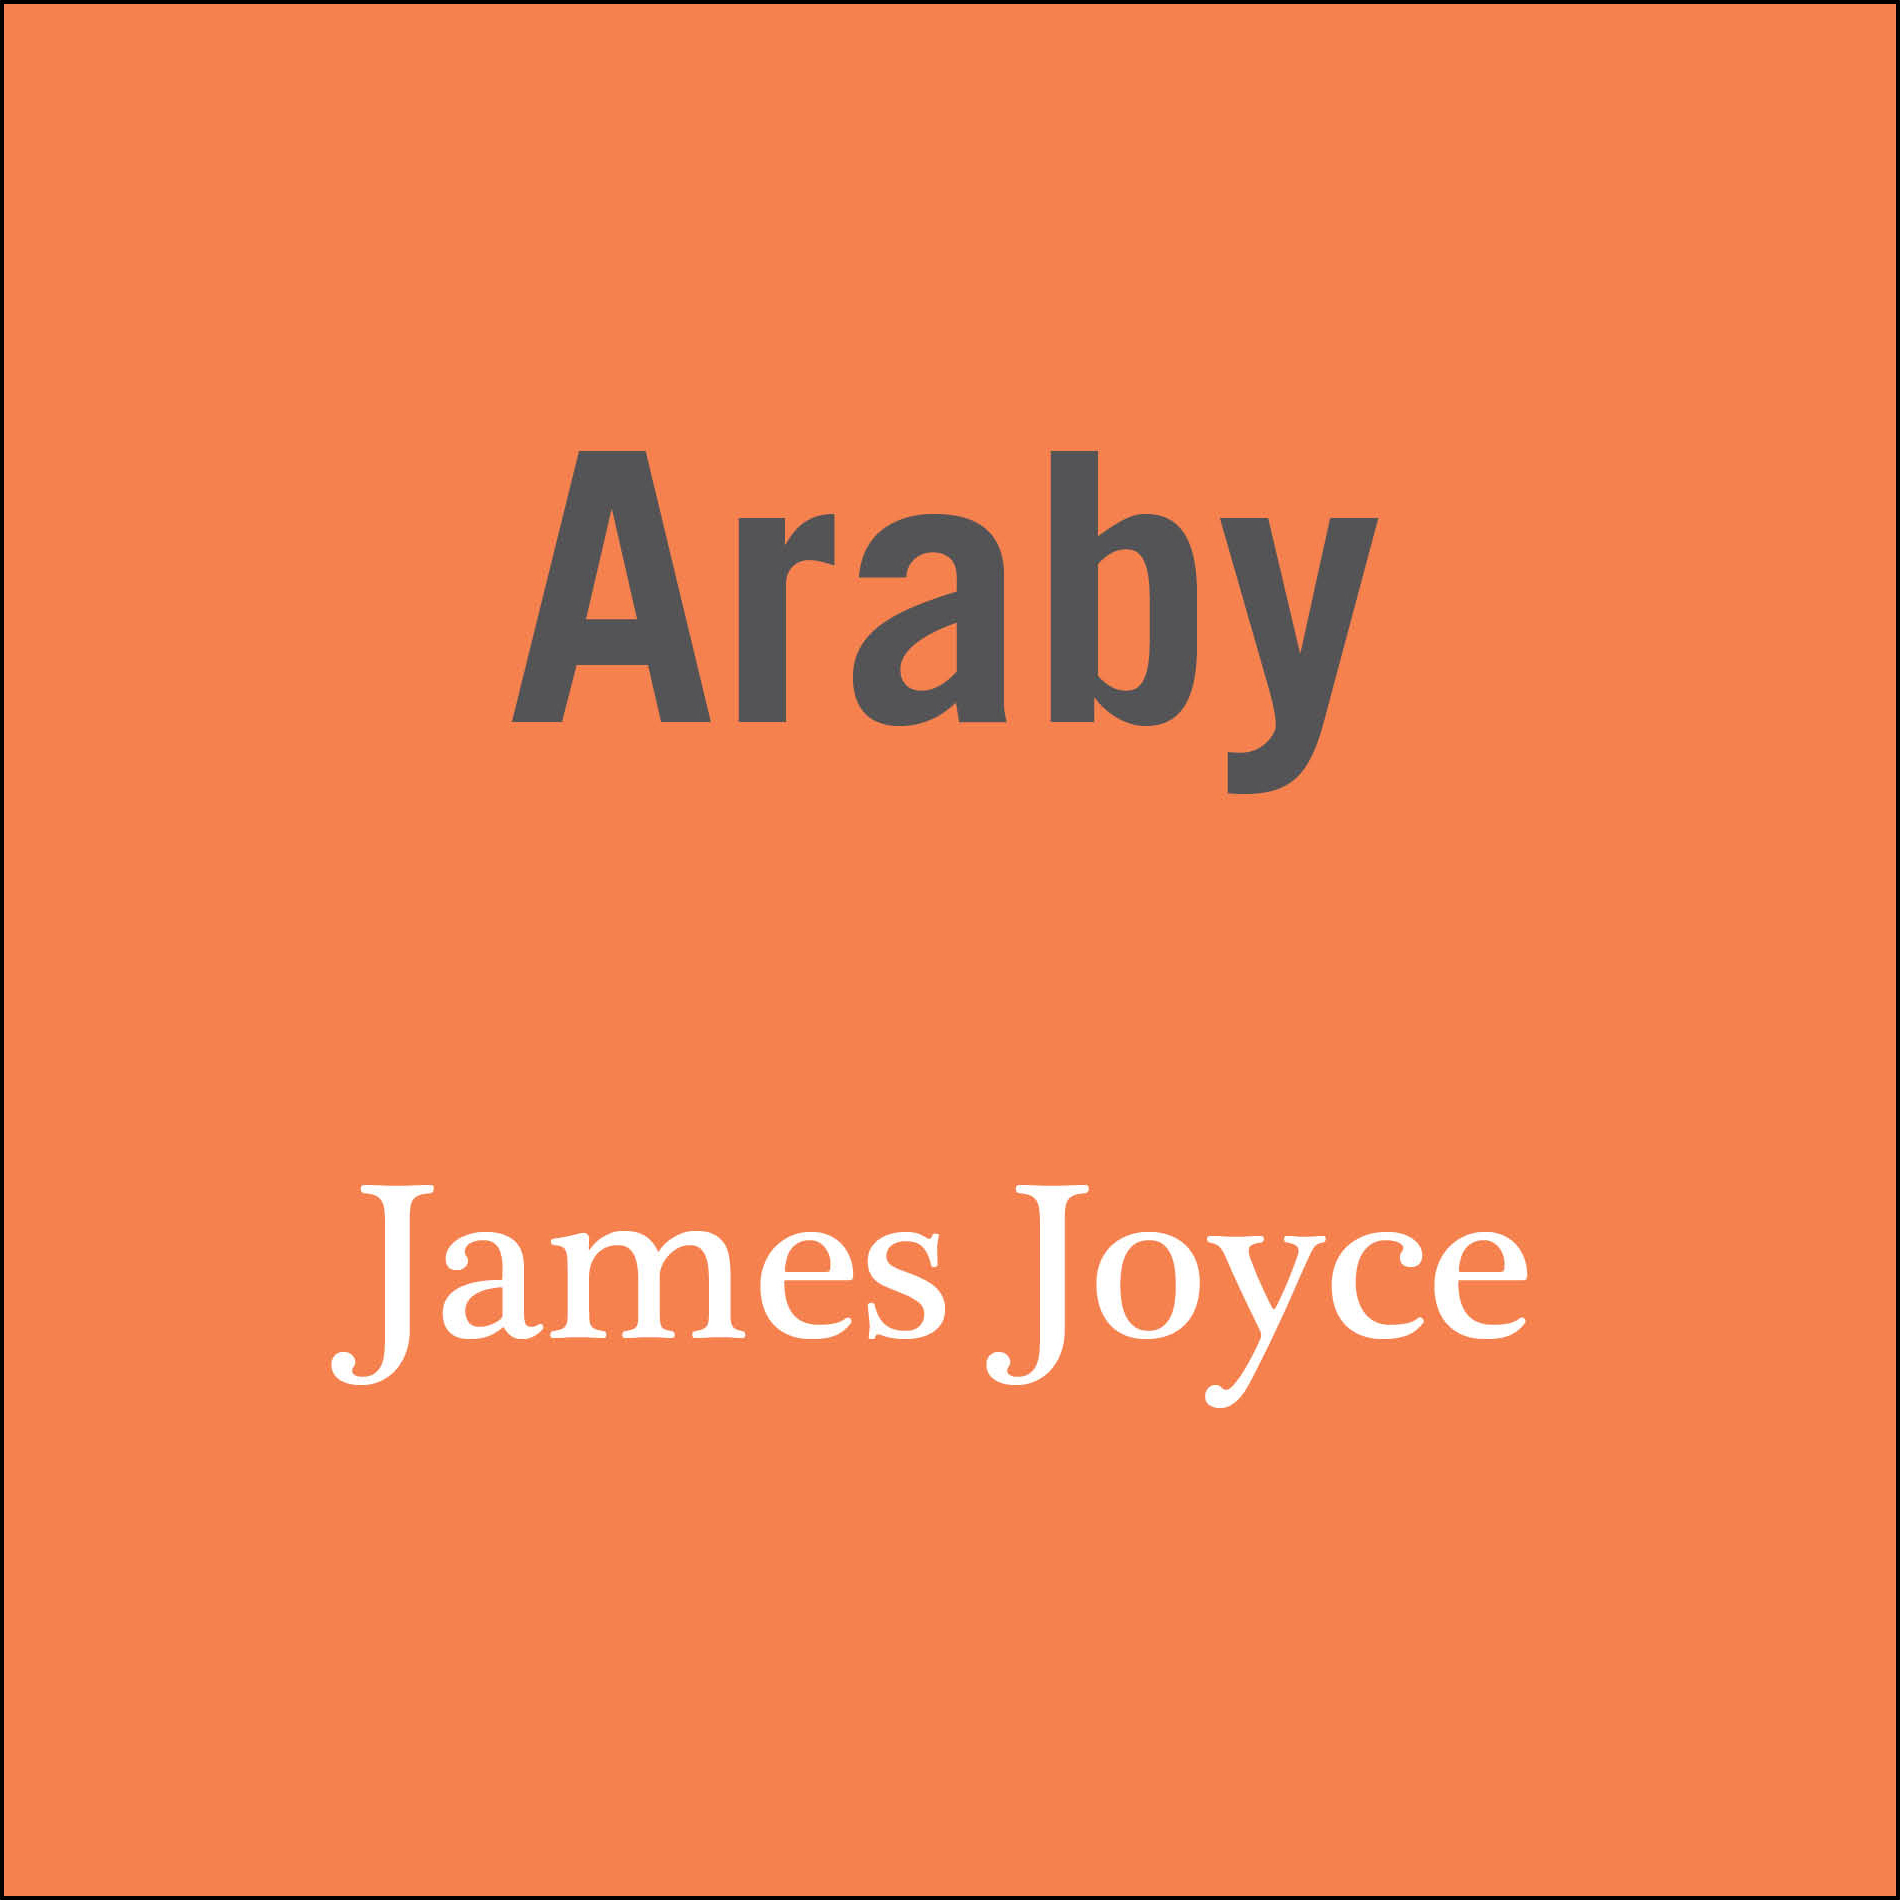 an analysis of the setting in araby by james joyce In araby, joyce describes the setting of the story in great detail in an essay, examine how the setting of the story reflects the emotional condition of the narrator responses should indicate that the setting is a cold and poorly lit neighborhood.